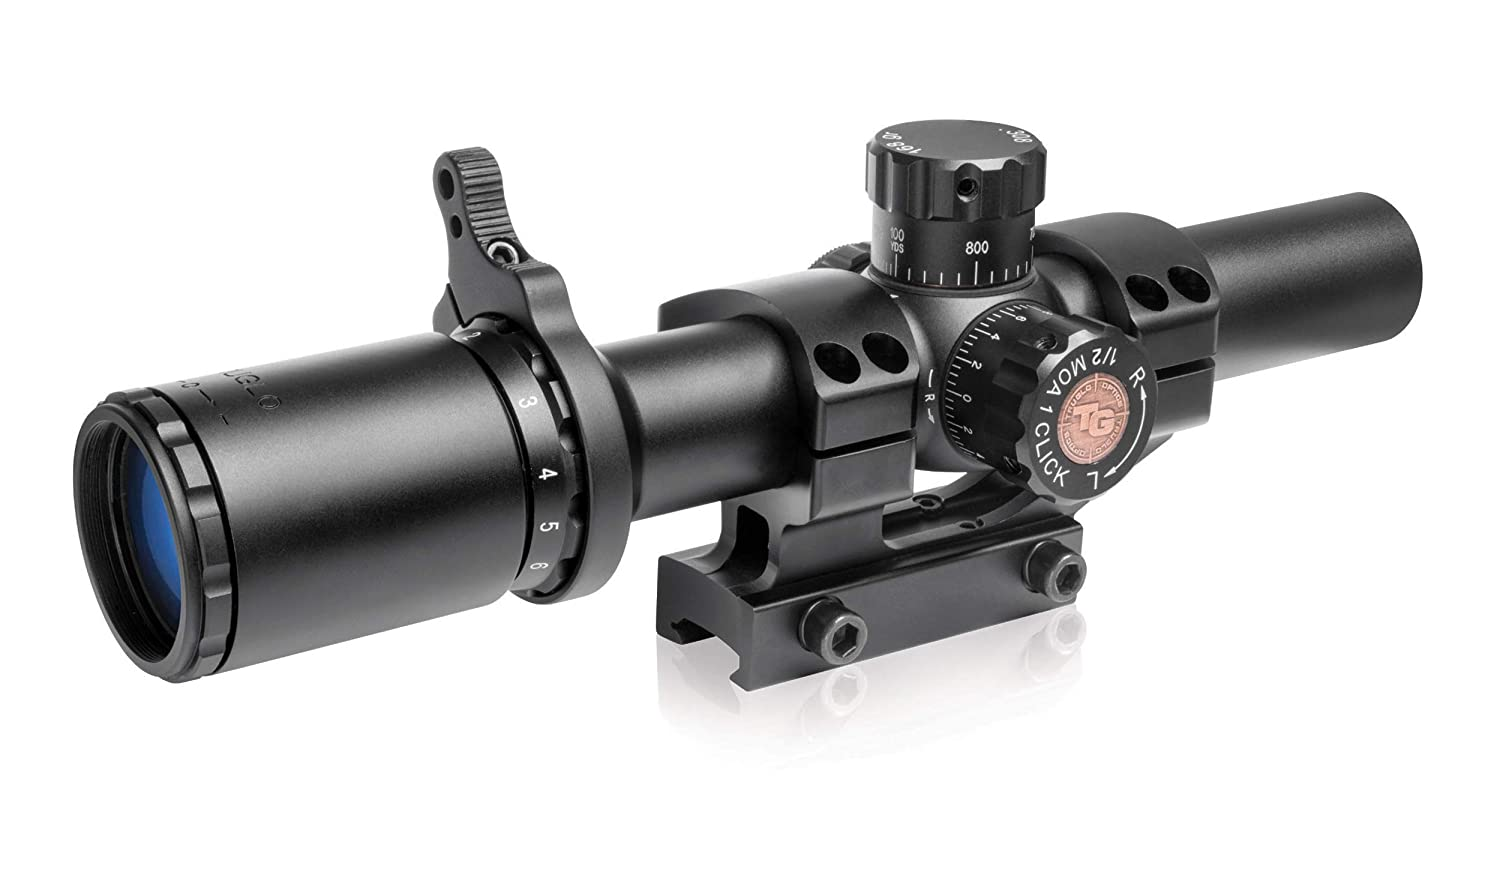 4.TRUGLO TRU-Brite 30 Series 1-6x24mm Tactical Riflescope